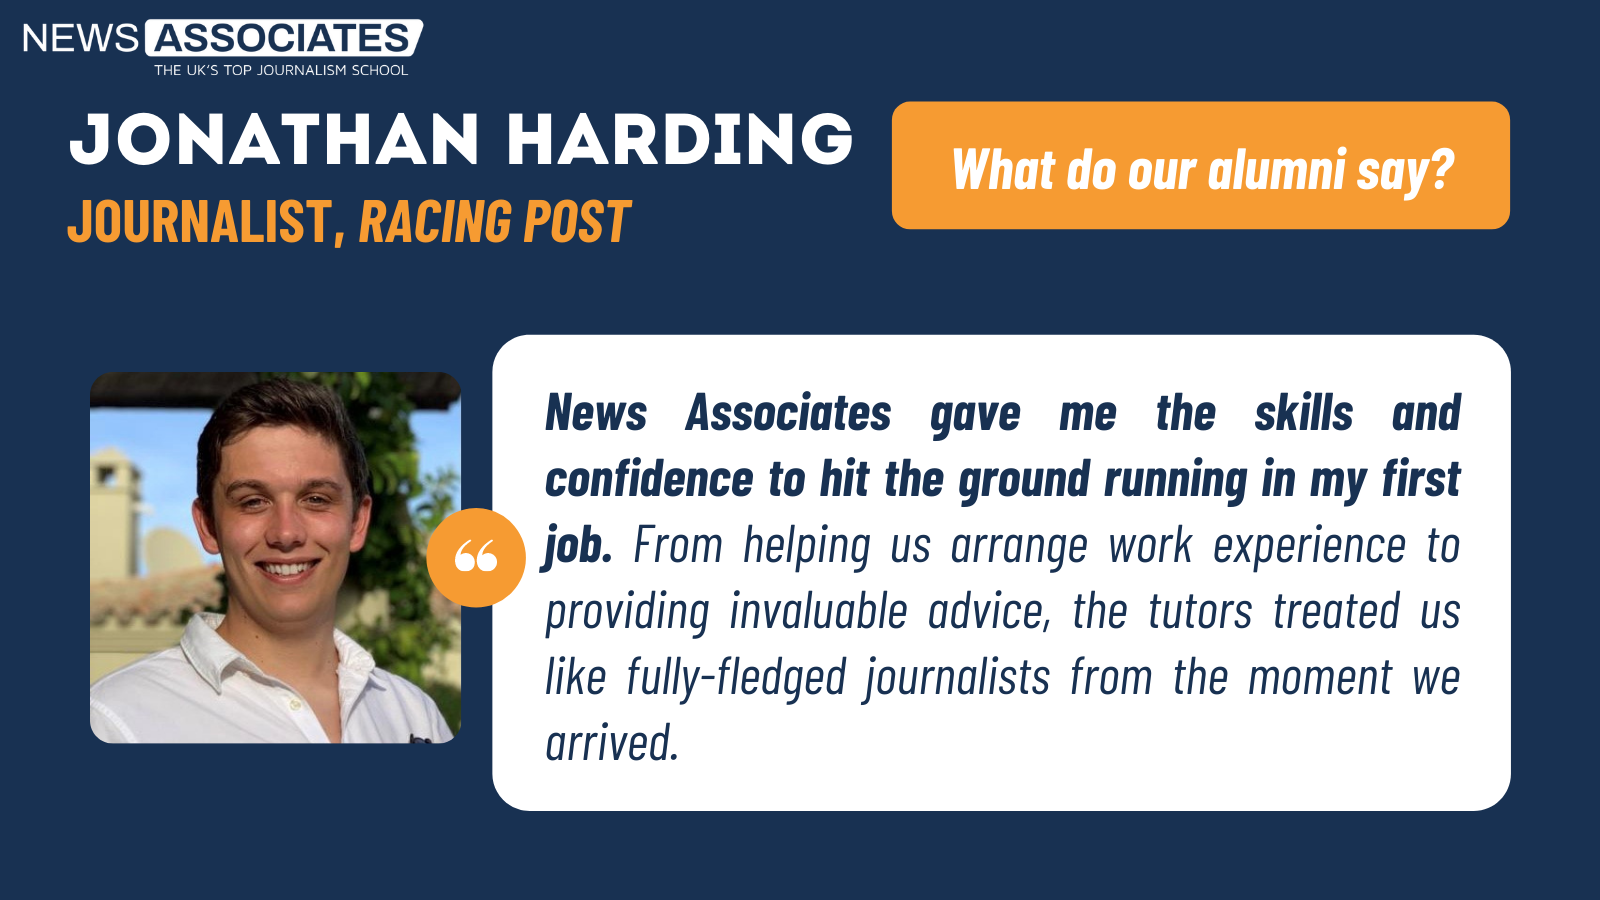 Racing Post's Jonathan Harding's testimonial: News Associates gave me the skills and confidence to hit the ground running in my first job. From helping us arrange work experience to providing invaluable advice, the tutors treated us like fully-fledged journalists from the moment we arrived.